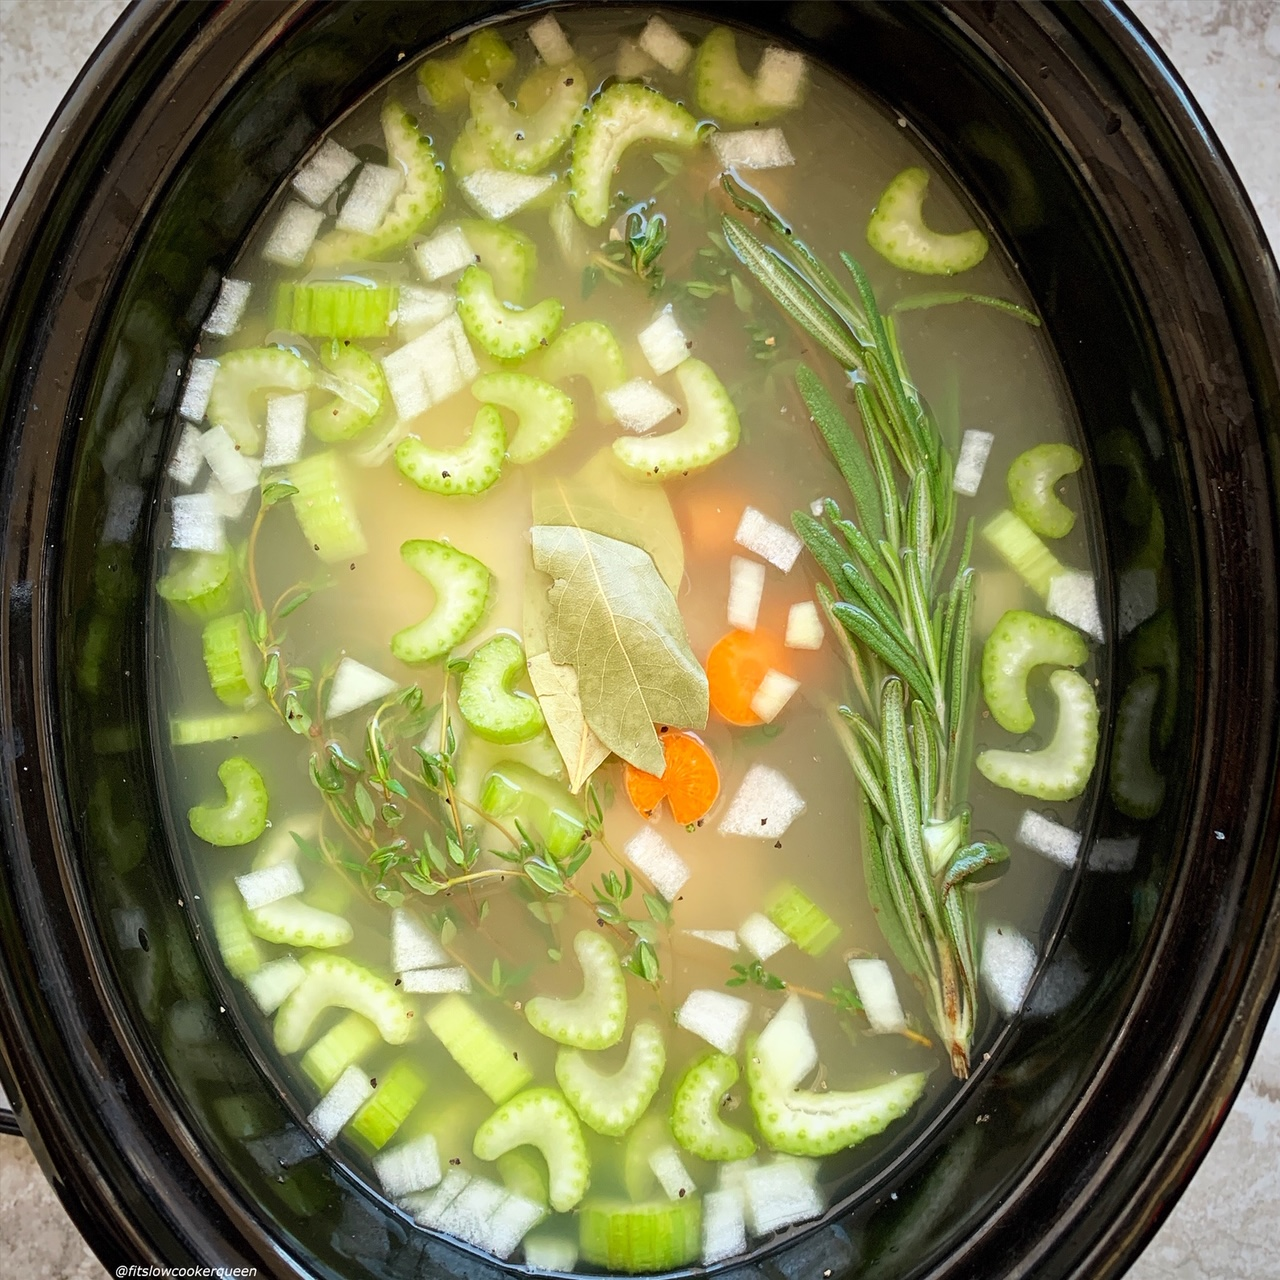 pic of raw chicken, broth, celery, onion, and carrots in the slow cooker for Slow Cooker Instant Pot Chicken Soup (Low-Carb, Paleo, Whole30) (1)